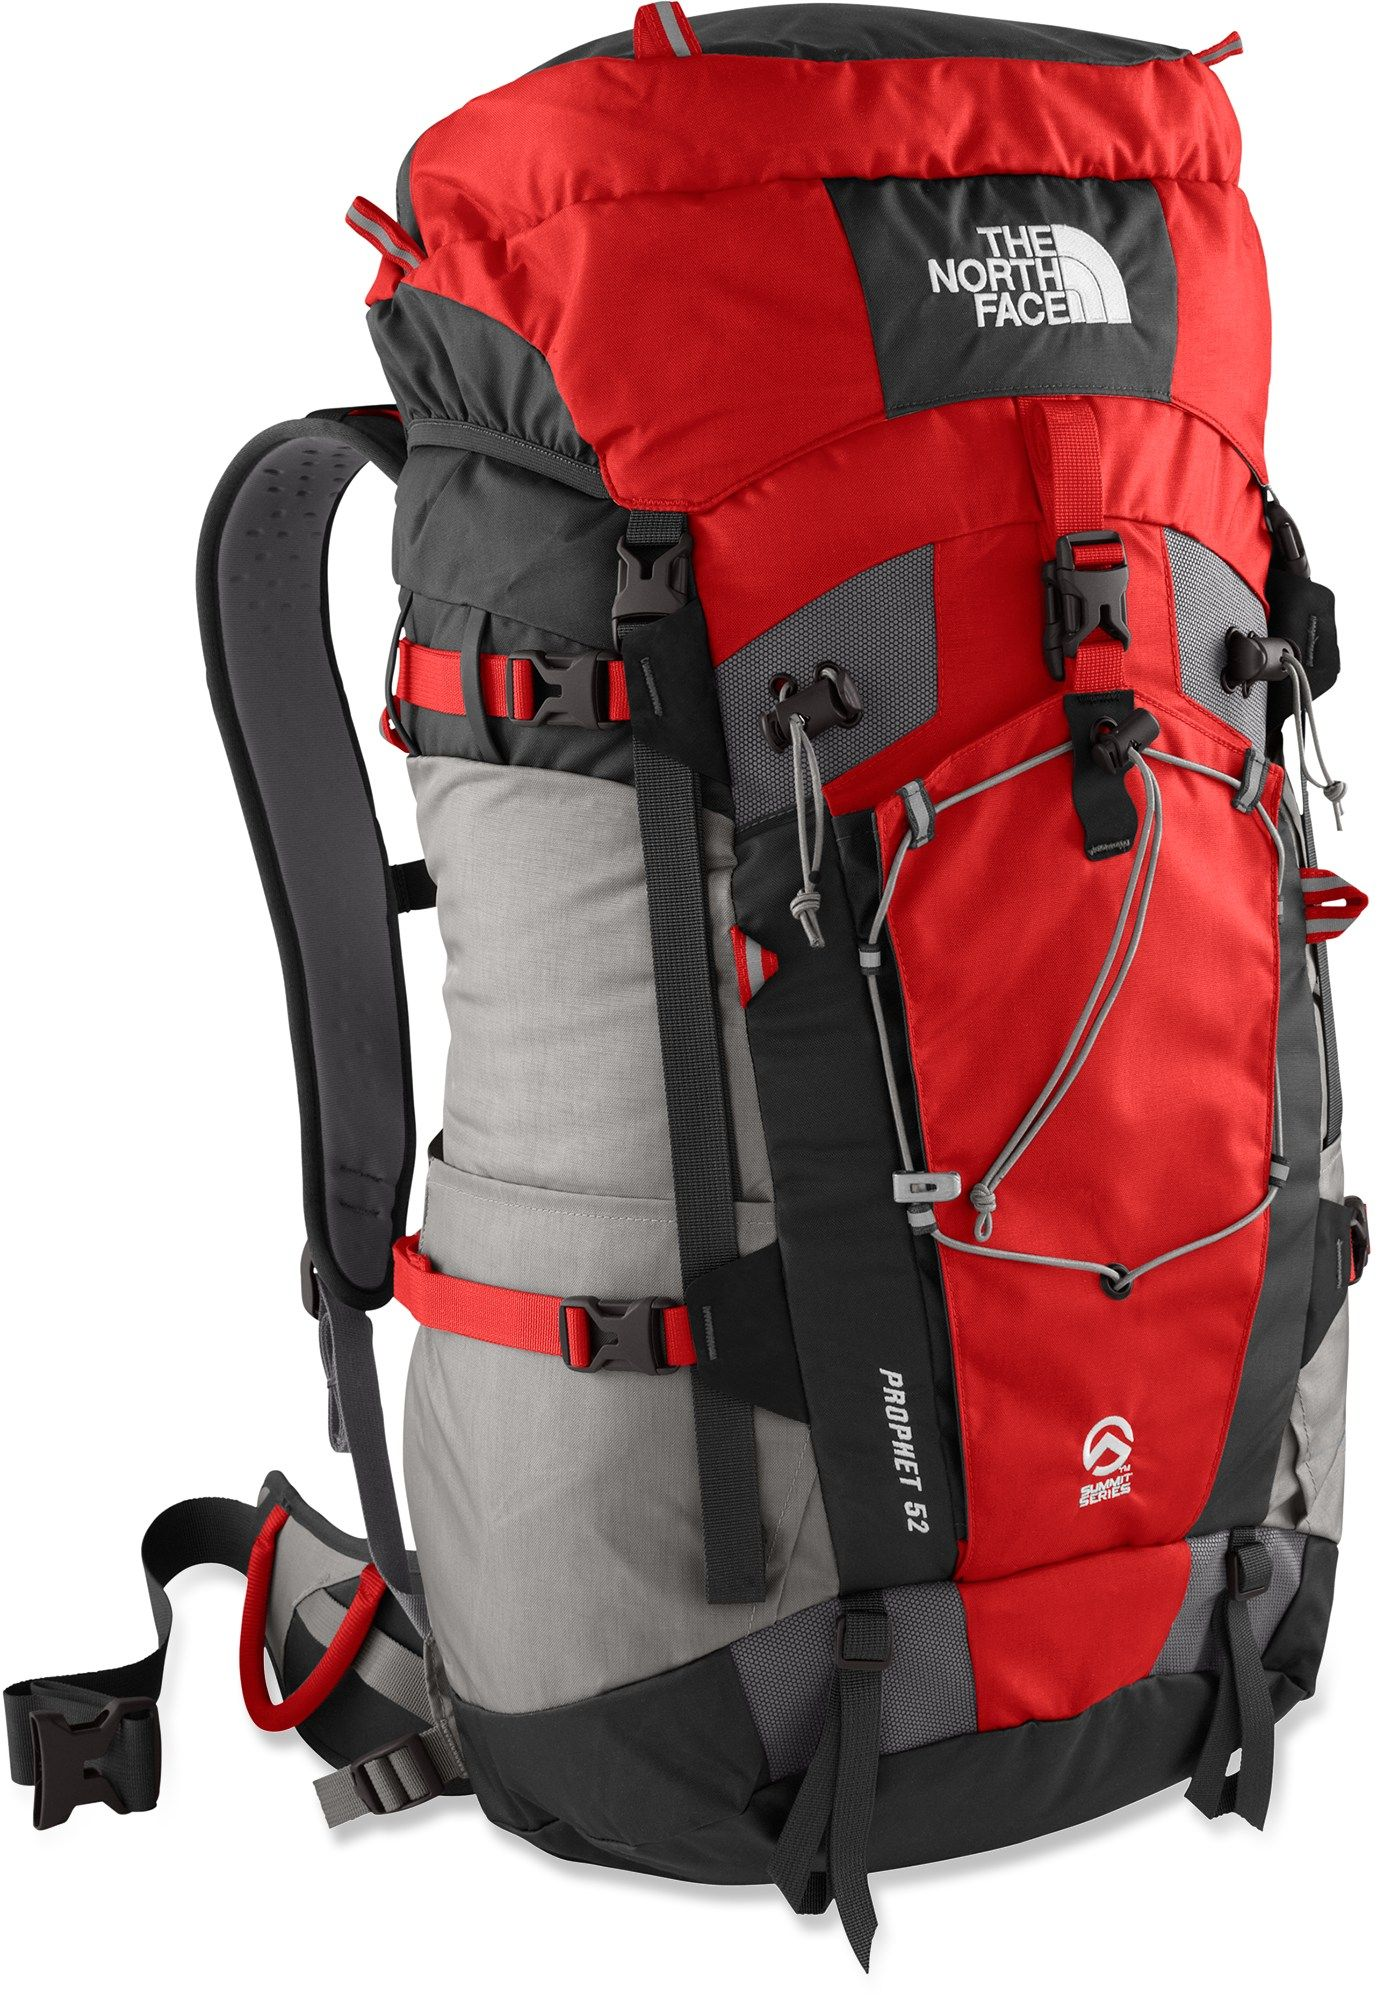 12996acc4 Rei Pack | Places I want to go | Outdoor backpacks, Hiking bag ...